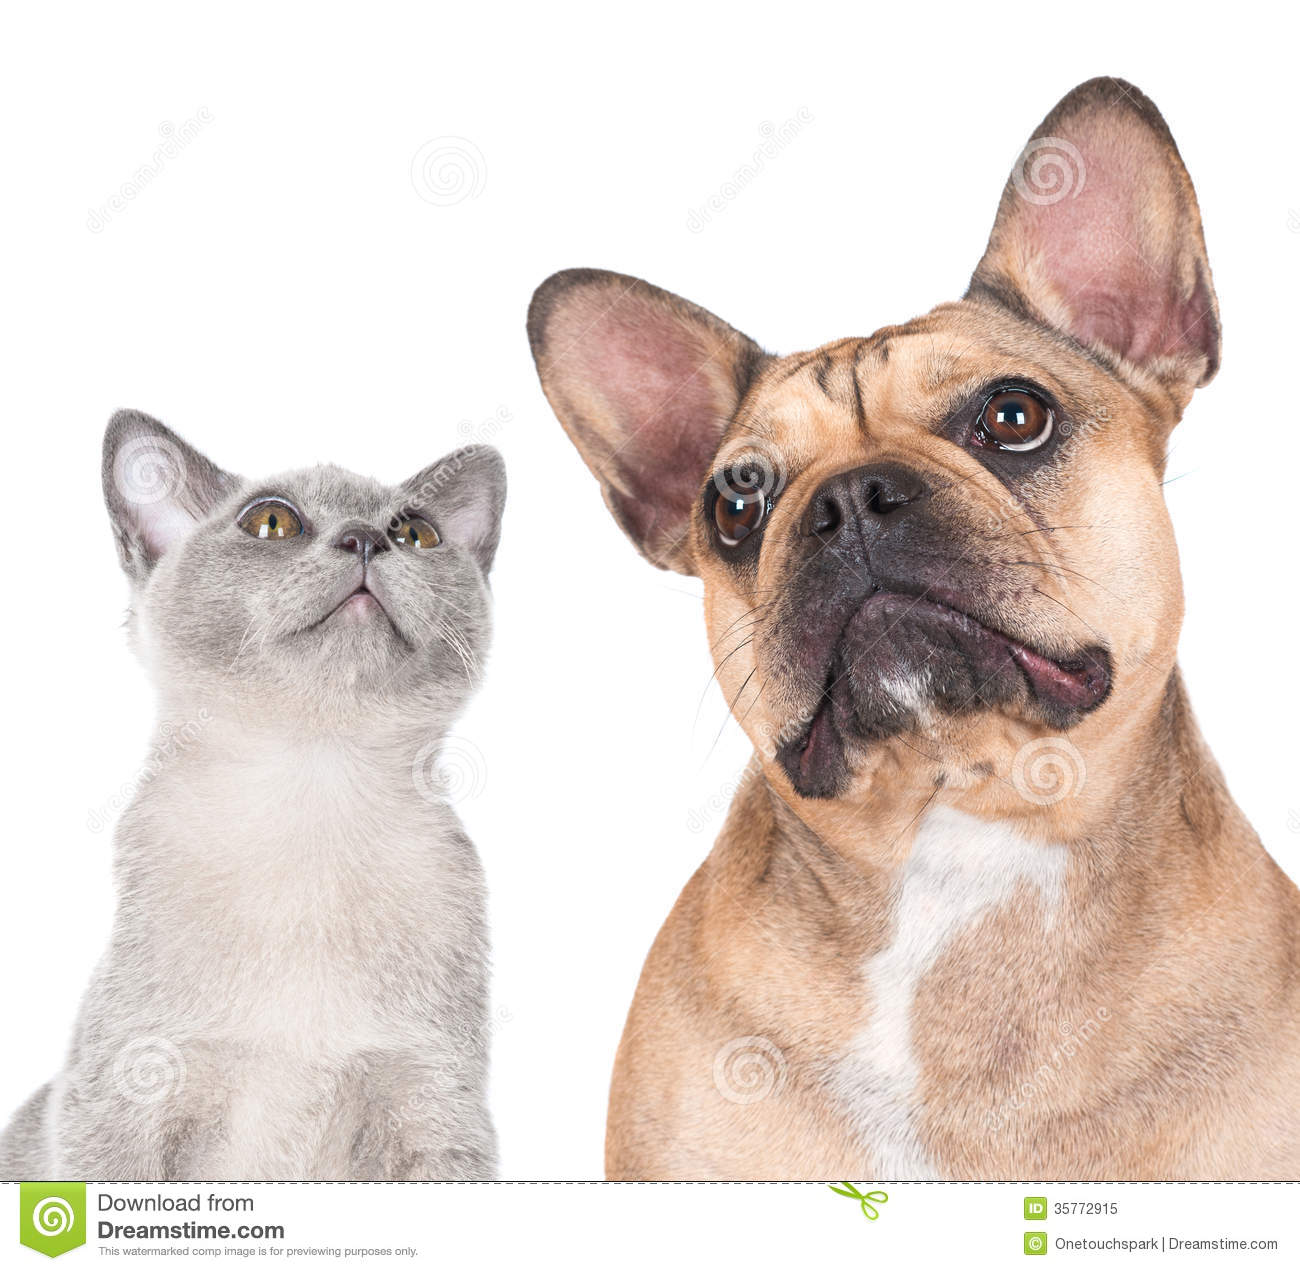 free clipart of dog and cat together - photo #28